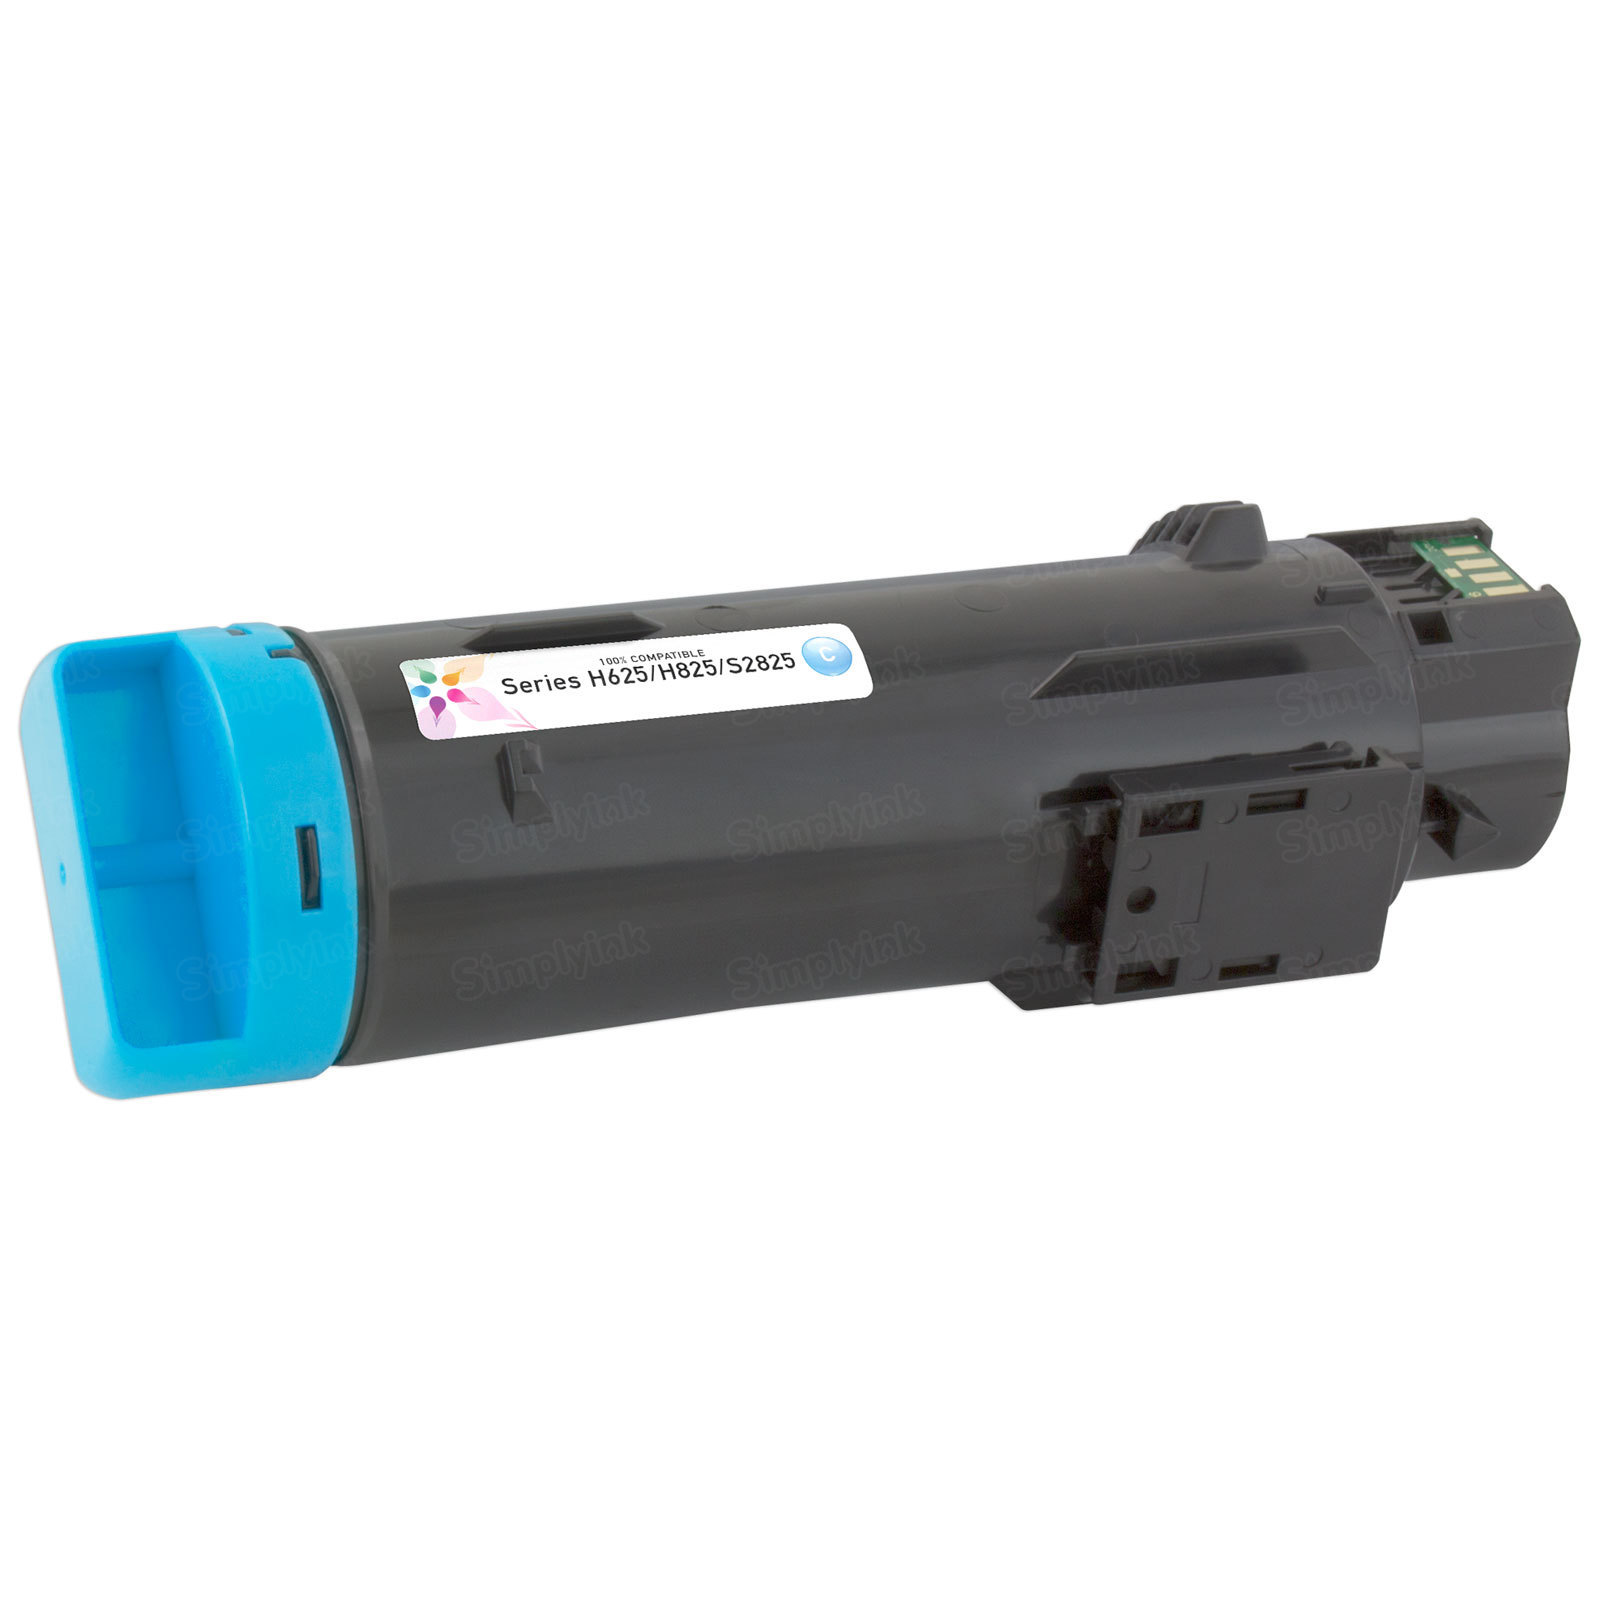 Comp. Cyan P3HJK Toner for Dell H625/H825